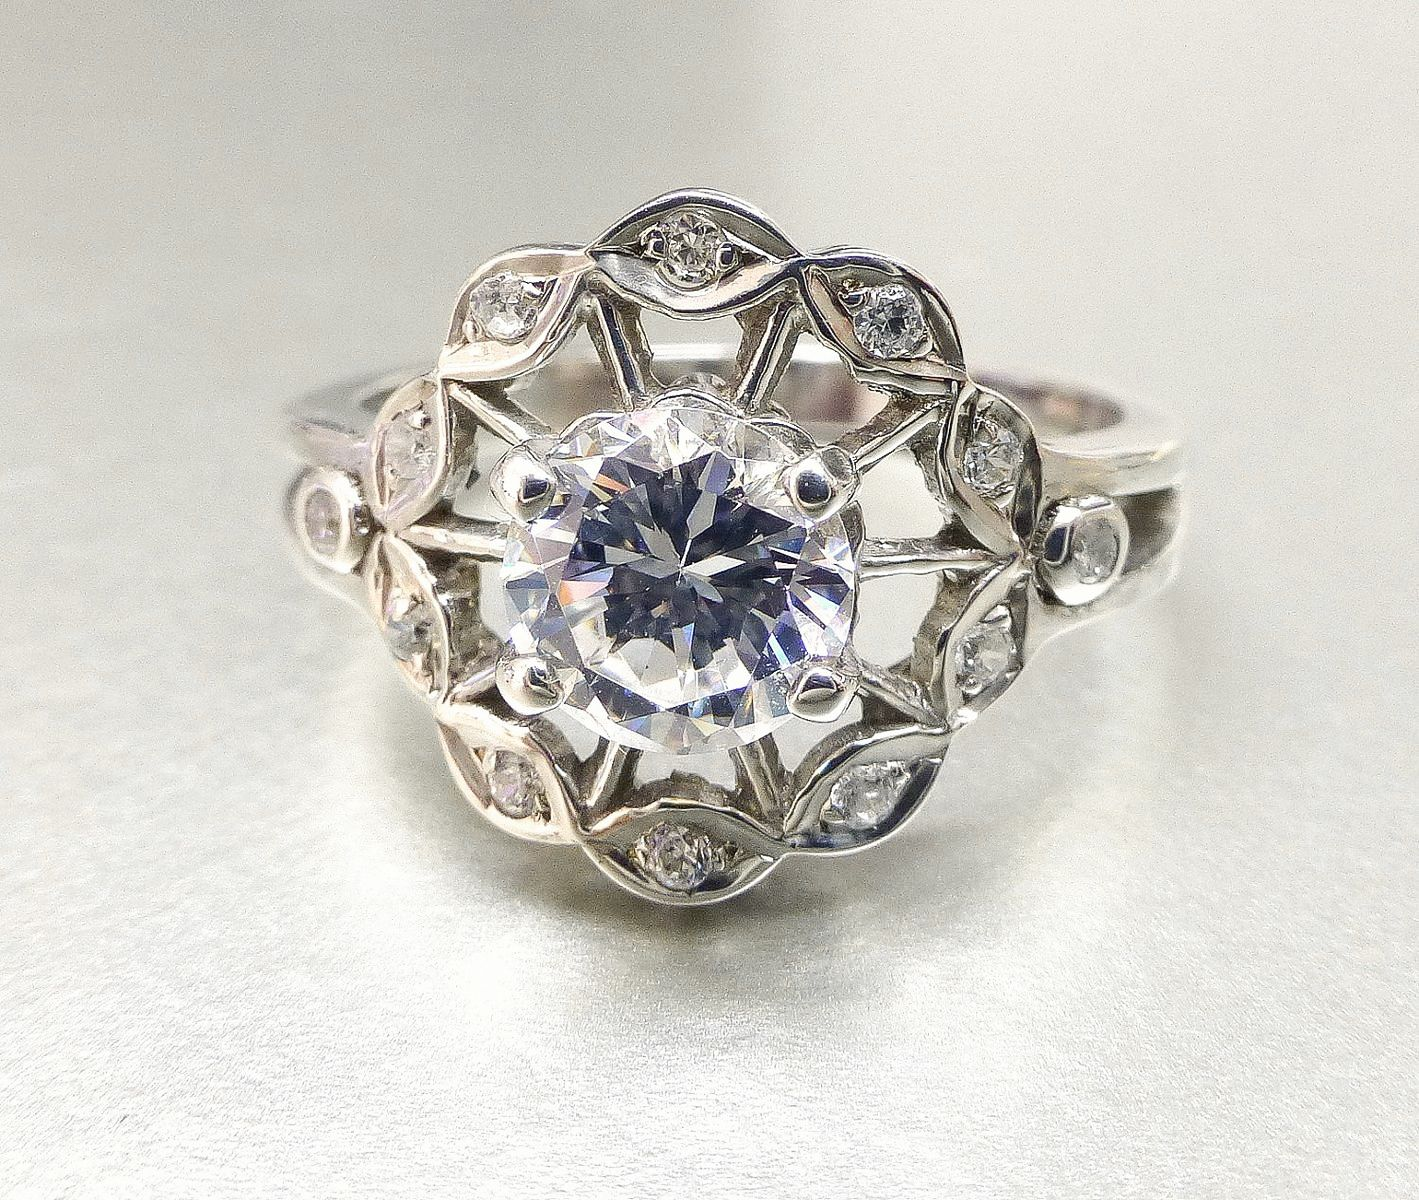 Buy A Hand Made Flower Engagement Ring With White Sapphire Made To